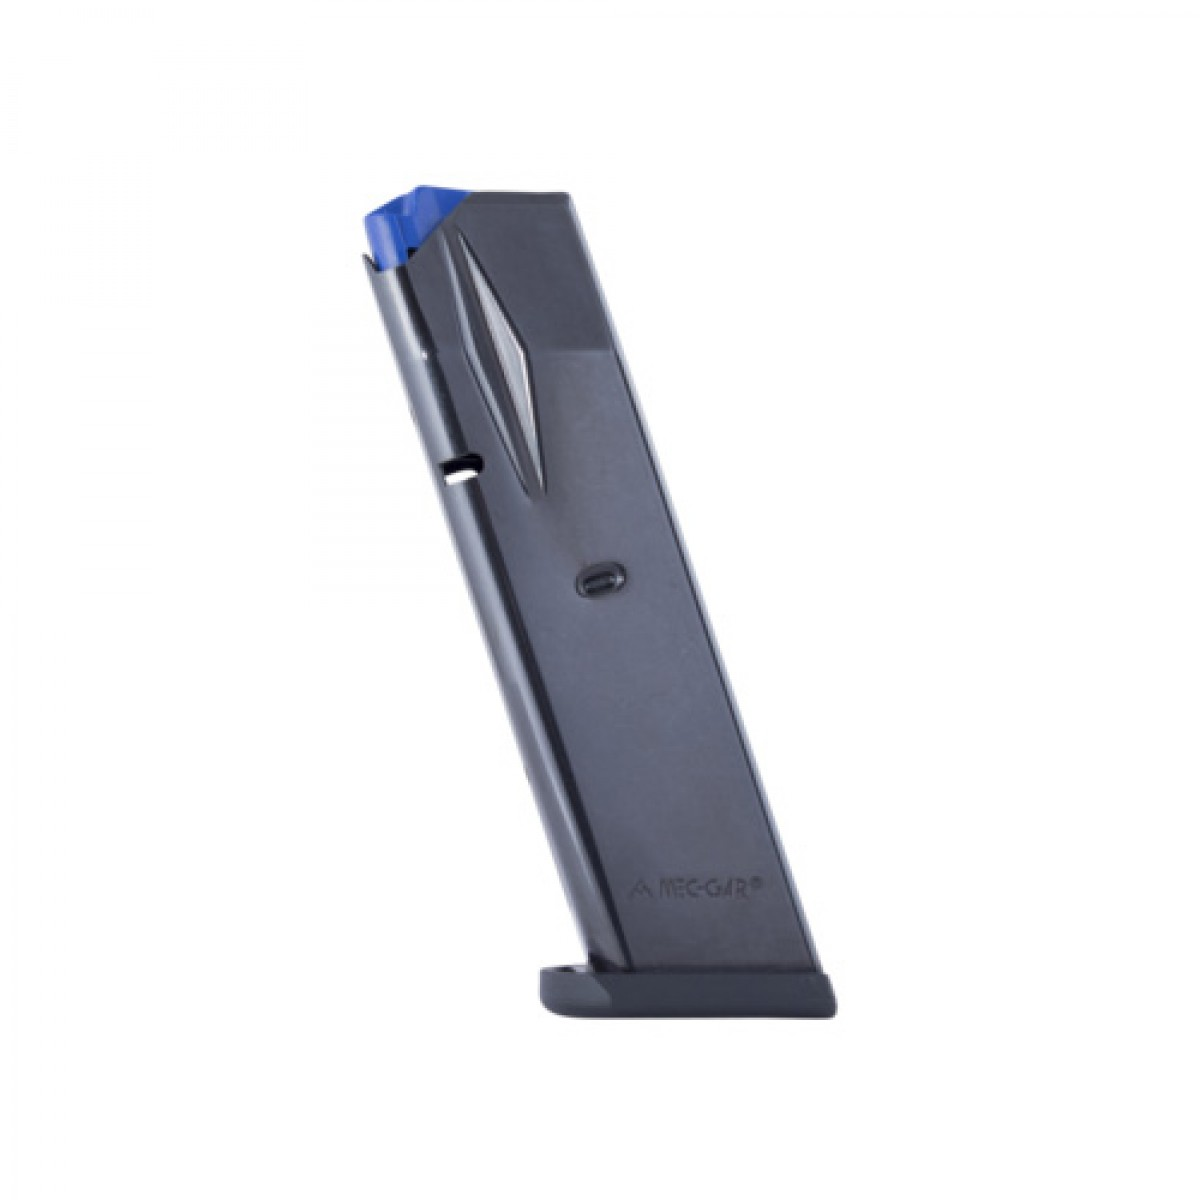 Mec-Gar Witness/Tanfoglio-SF 9mm 10-Round Magazine